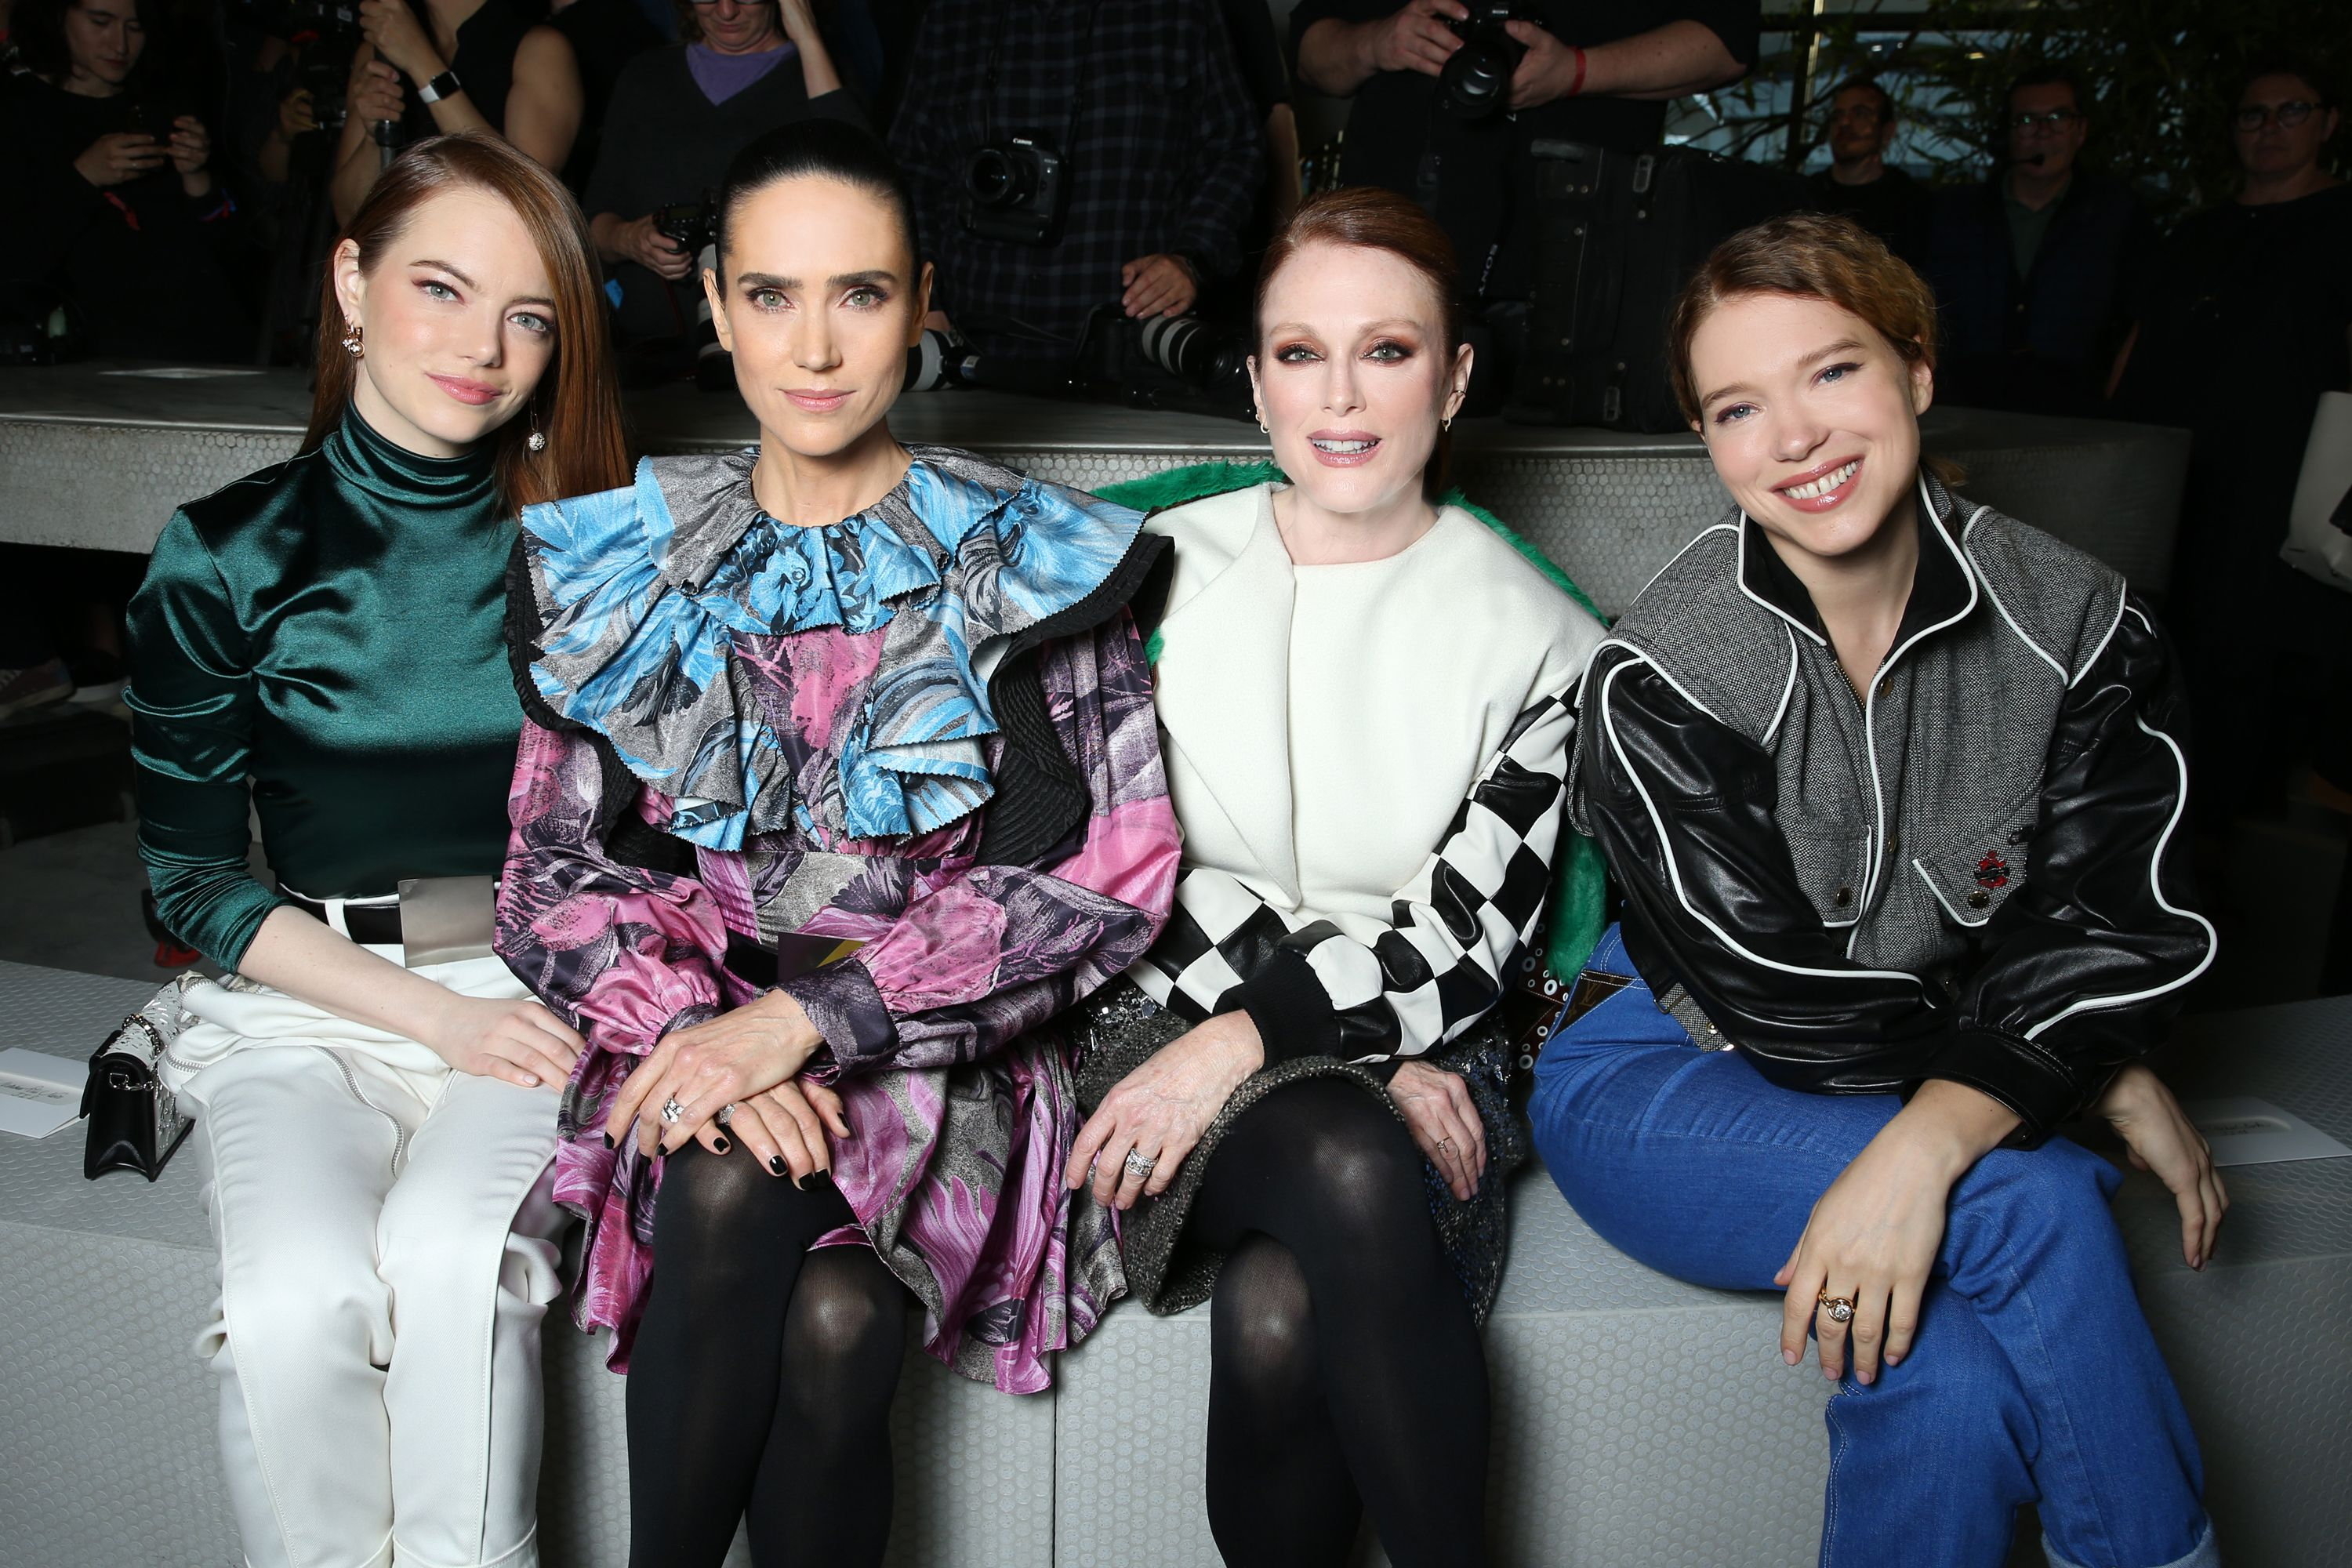 Emma Stone, Jennifer Connelly, Julianne Moore, and Lea Seydoux in the front row.